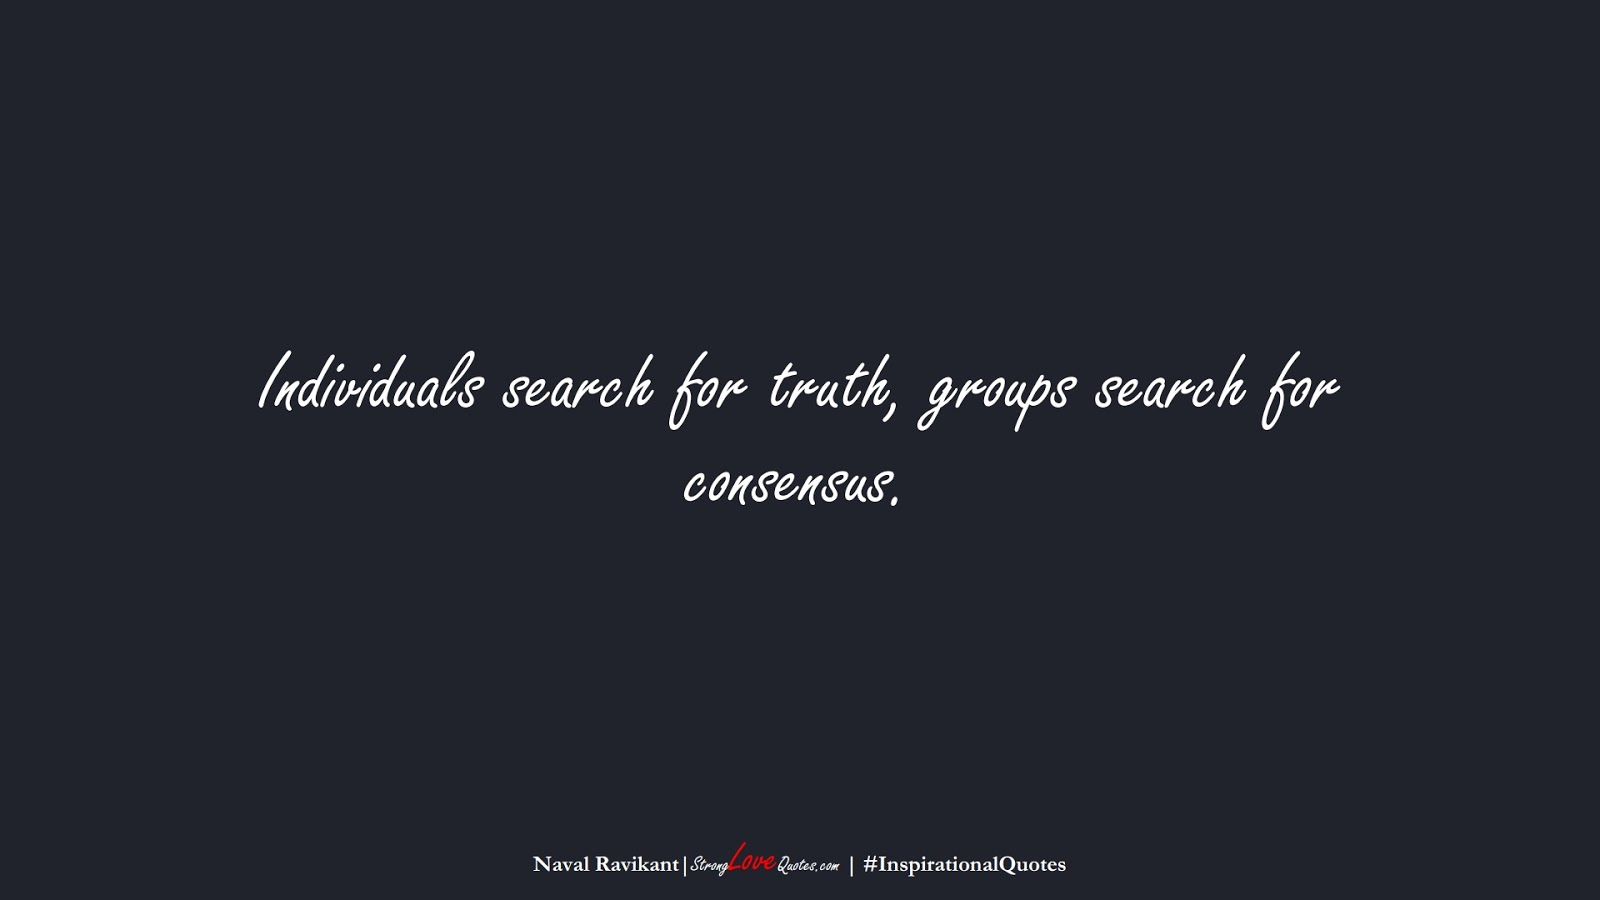 Individuals search for truth, groups search for consensus. (Naval Ravikant);  #InspirationalQuotes